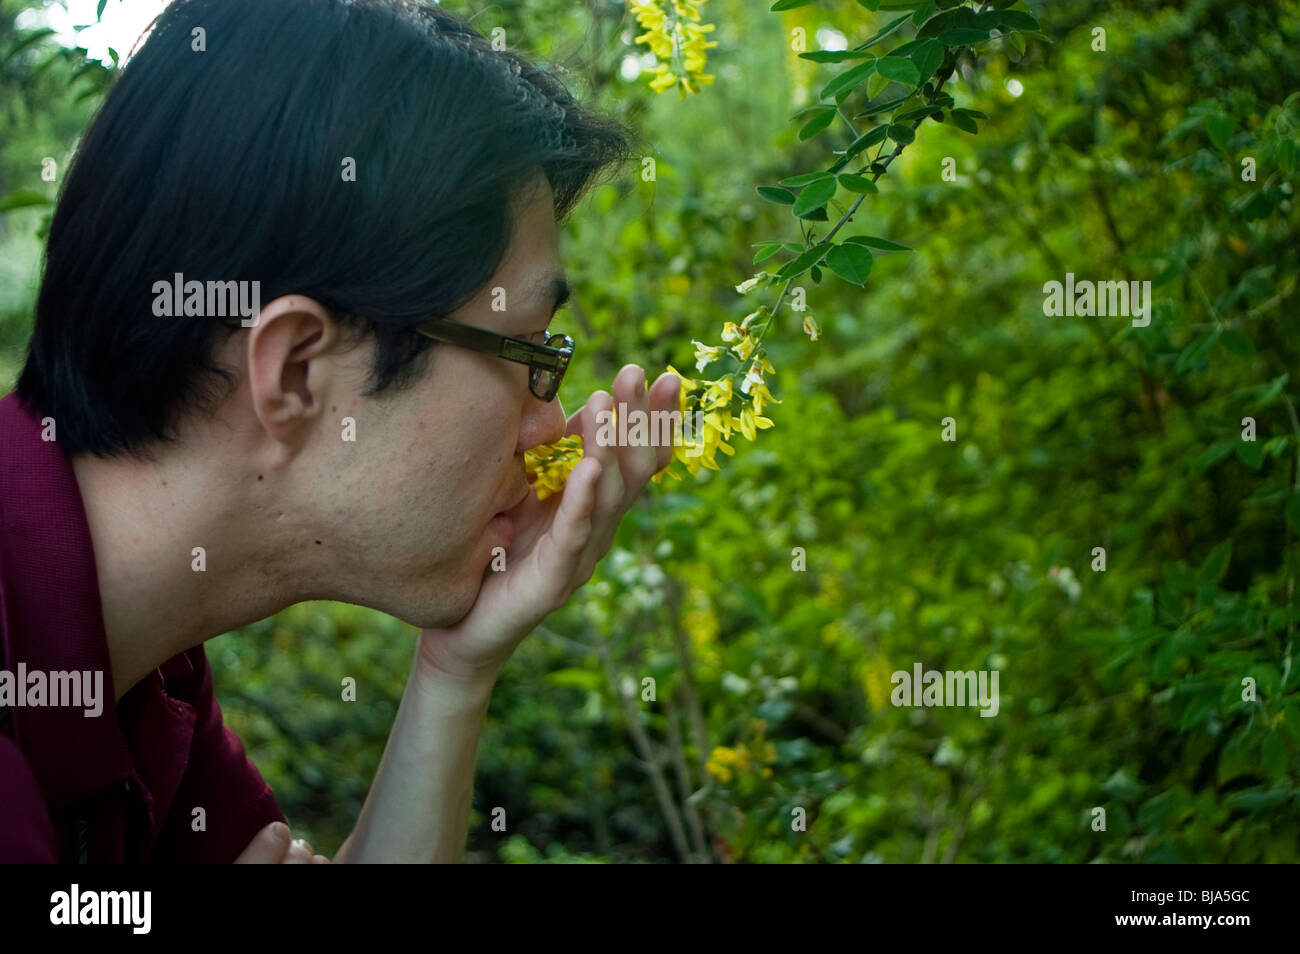 Paris, France, Public Parks, Young Man Smelling Flowers in Garden - Stock Image